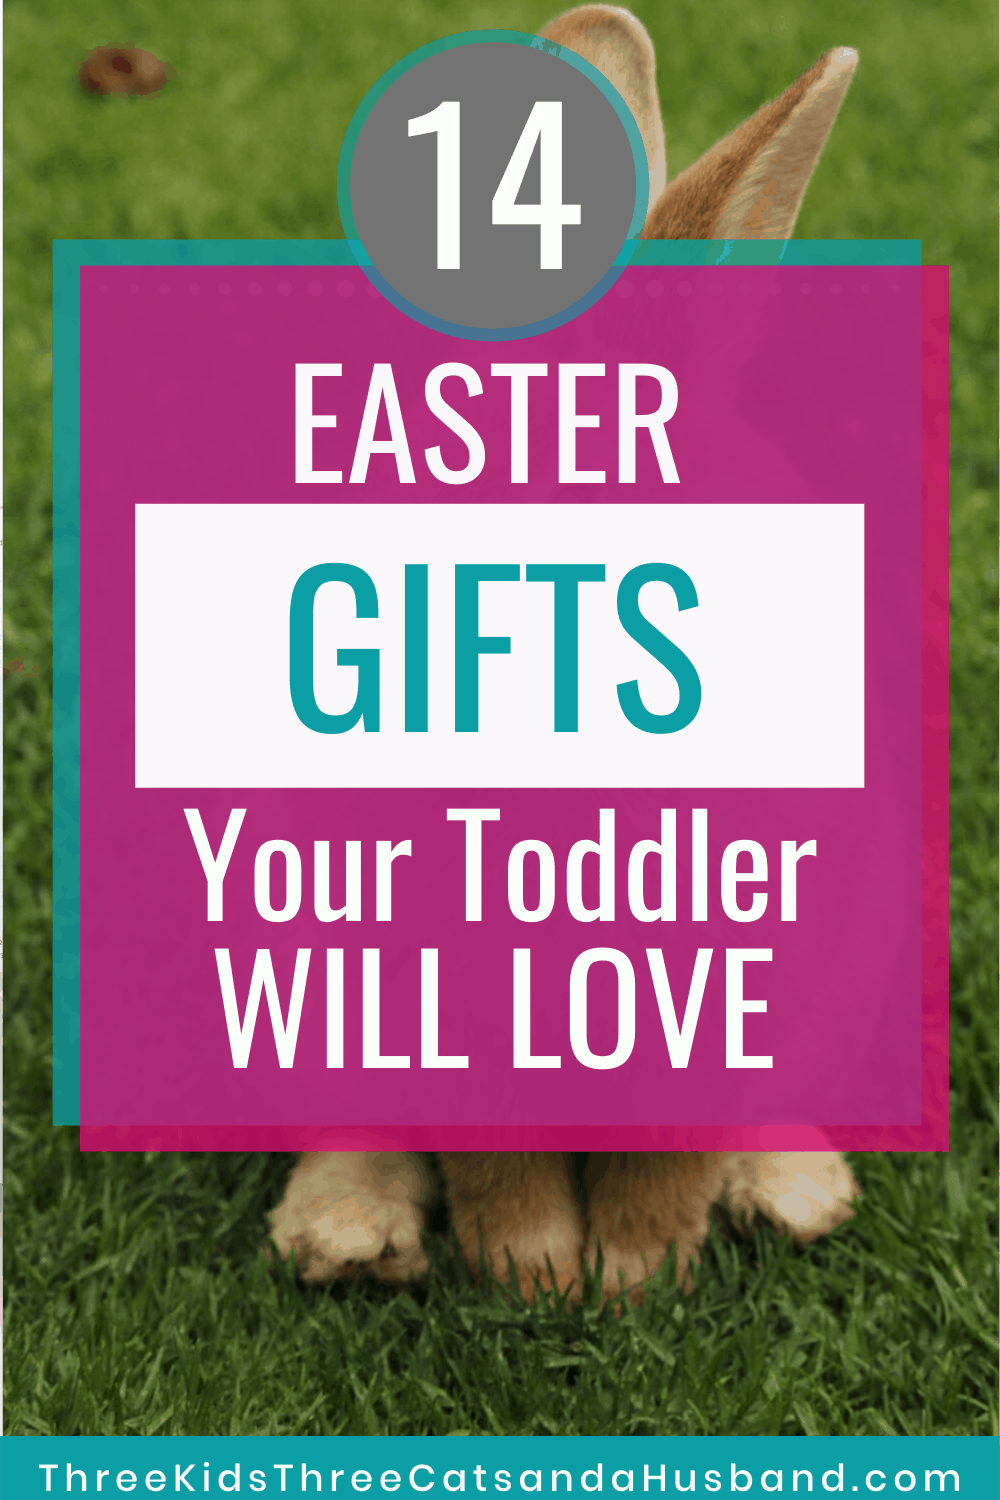 Easter gifts your toddler will love